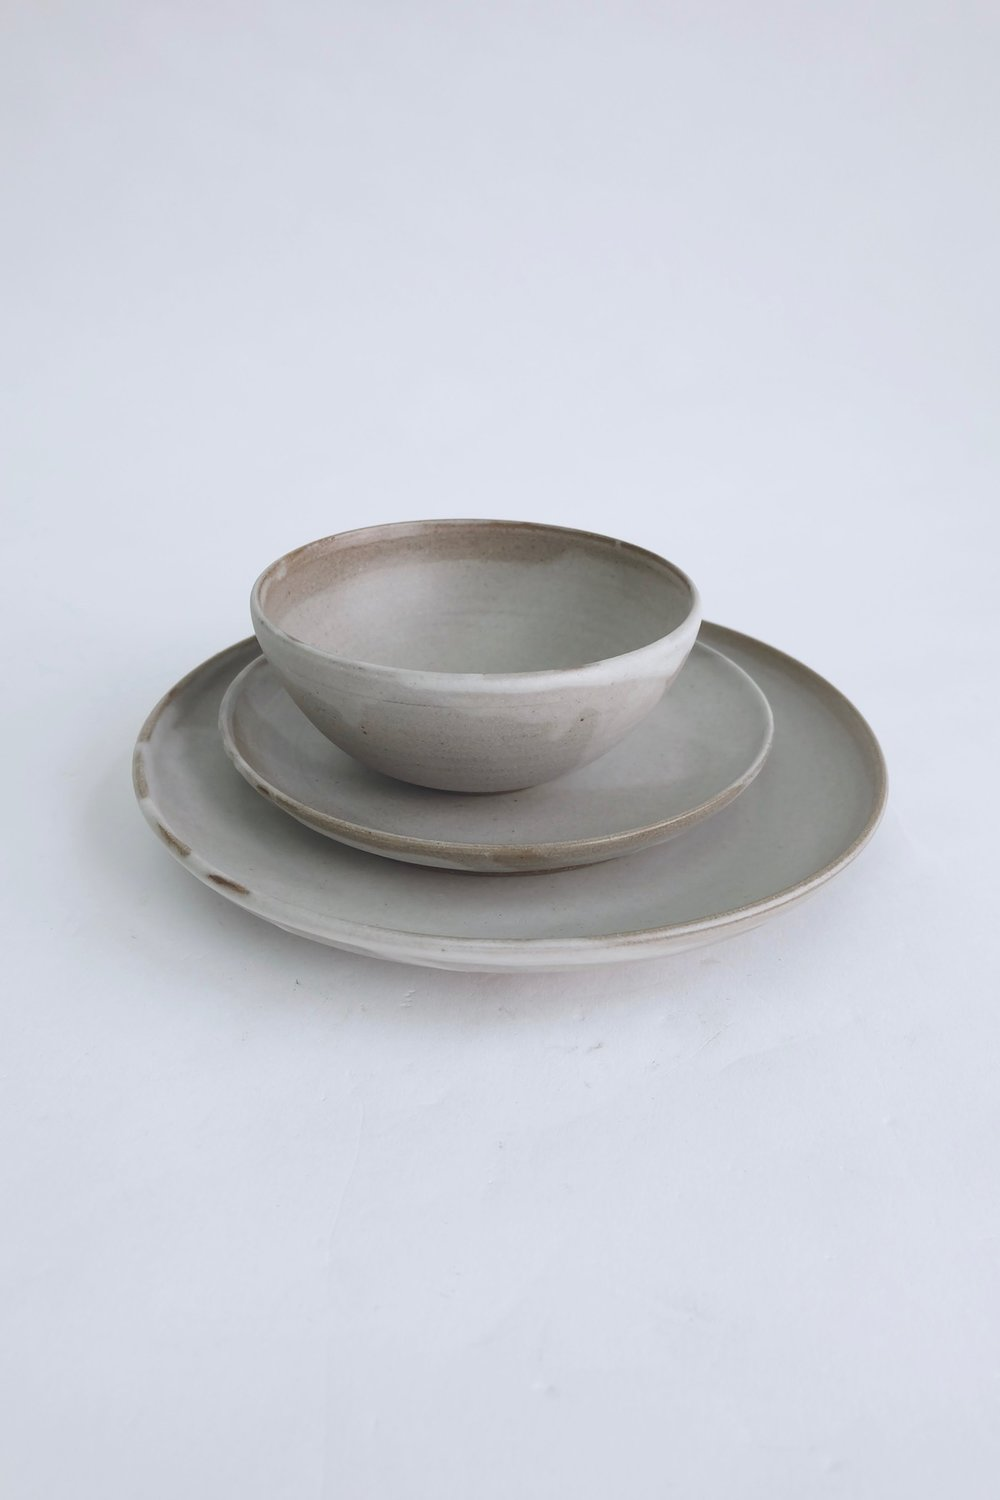 Dinnerware: 3-piece dinnerware for everyday use including a dinner plate, a salad/desert plate, and a soup/cereal bowl. I aimed to create the most versatile pieces that celebrate   the warmth and uniqueness of handmade objects.  Users can incorporate the pieces into their daily eating by themselves or with plates that users may already own. The neutral grey works well not only with colorful ingredients like beets and greens but also enhances white food items like rice and bread. It comes with a foot and can be used in both casual and dressed-up table setting.